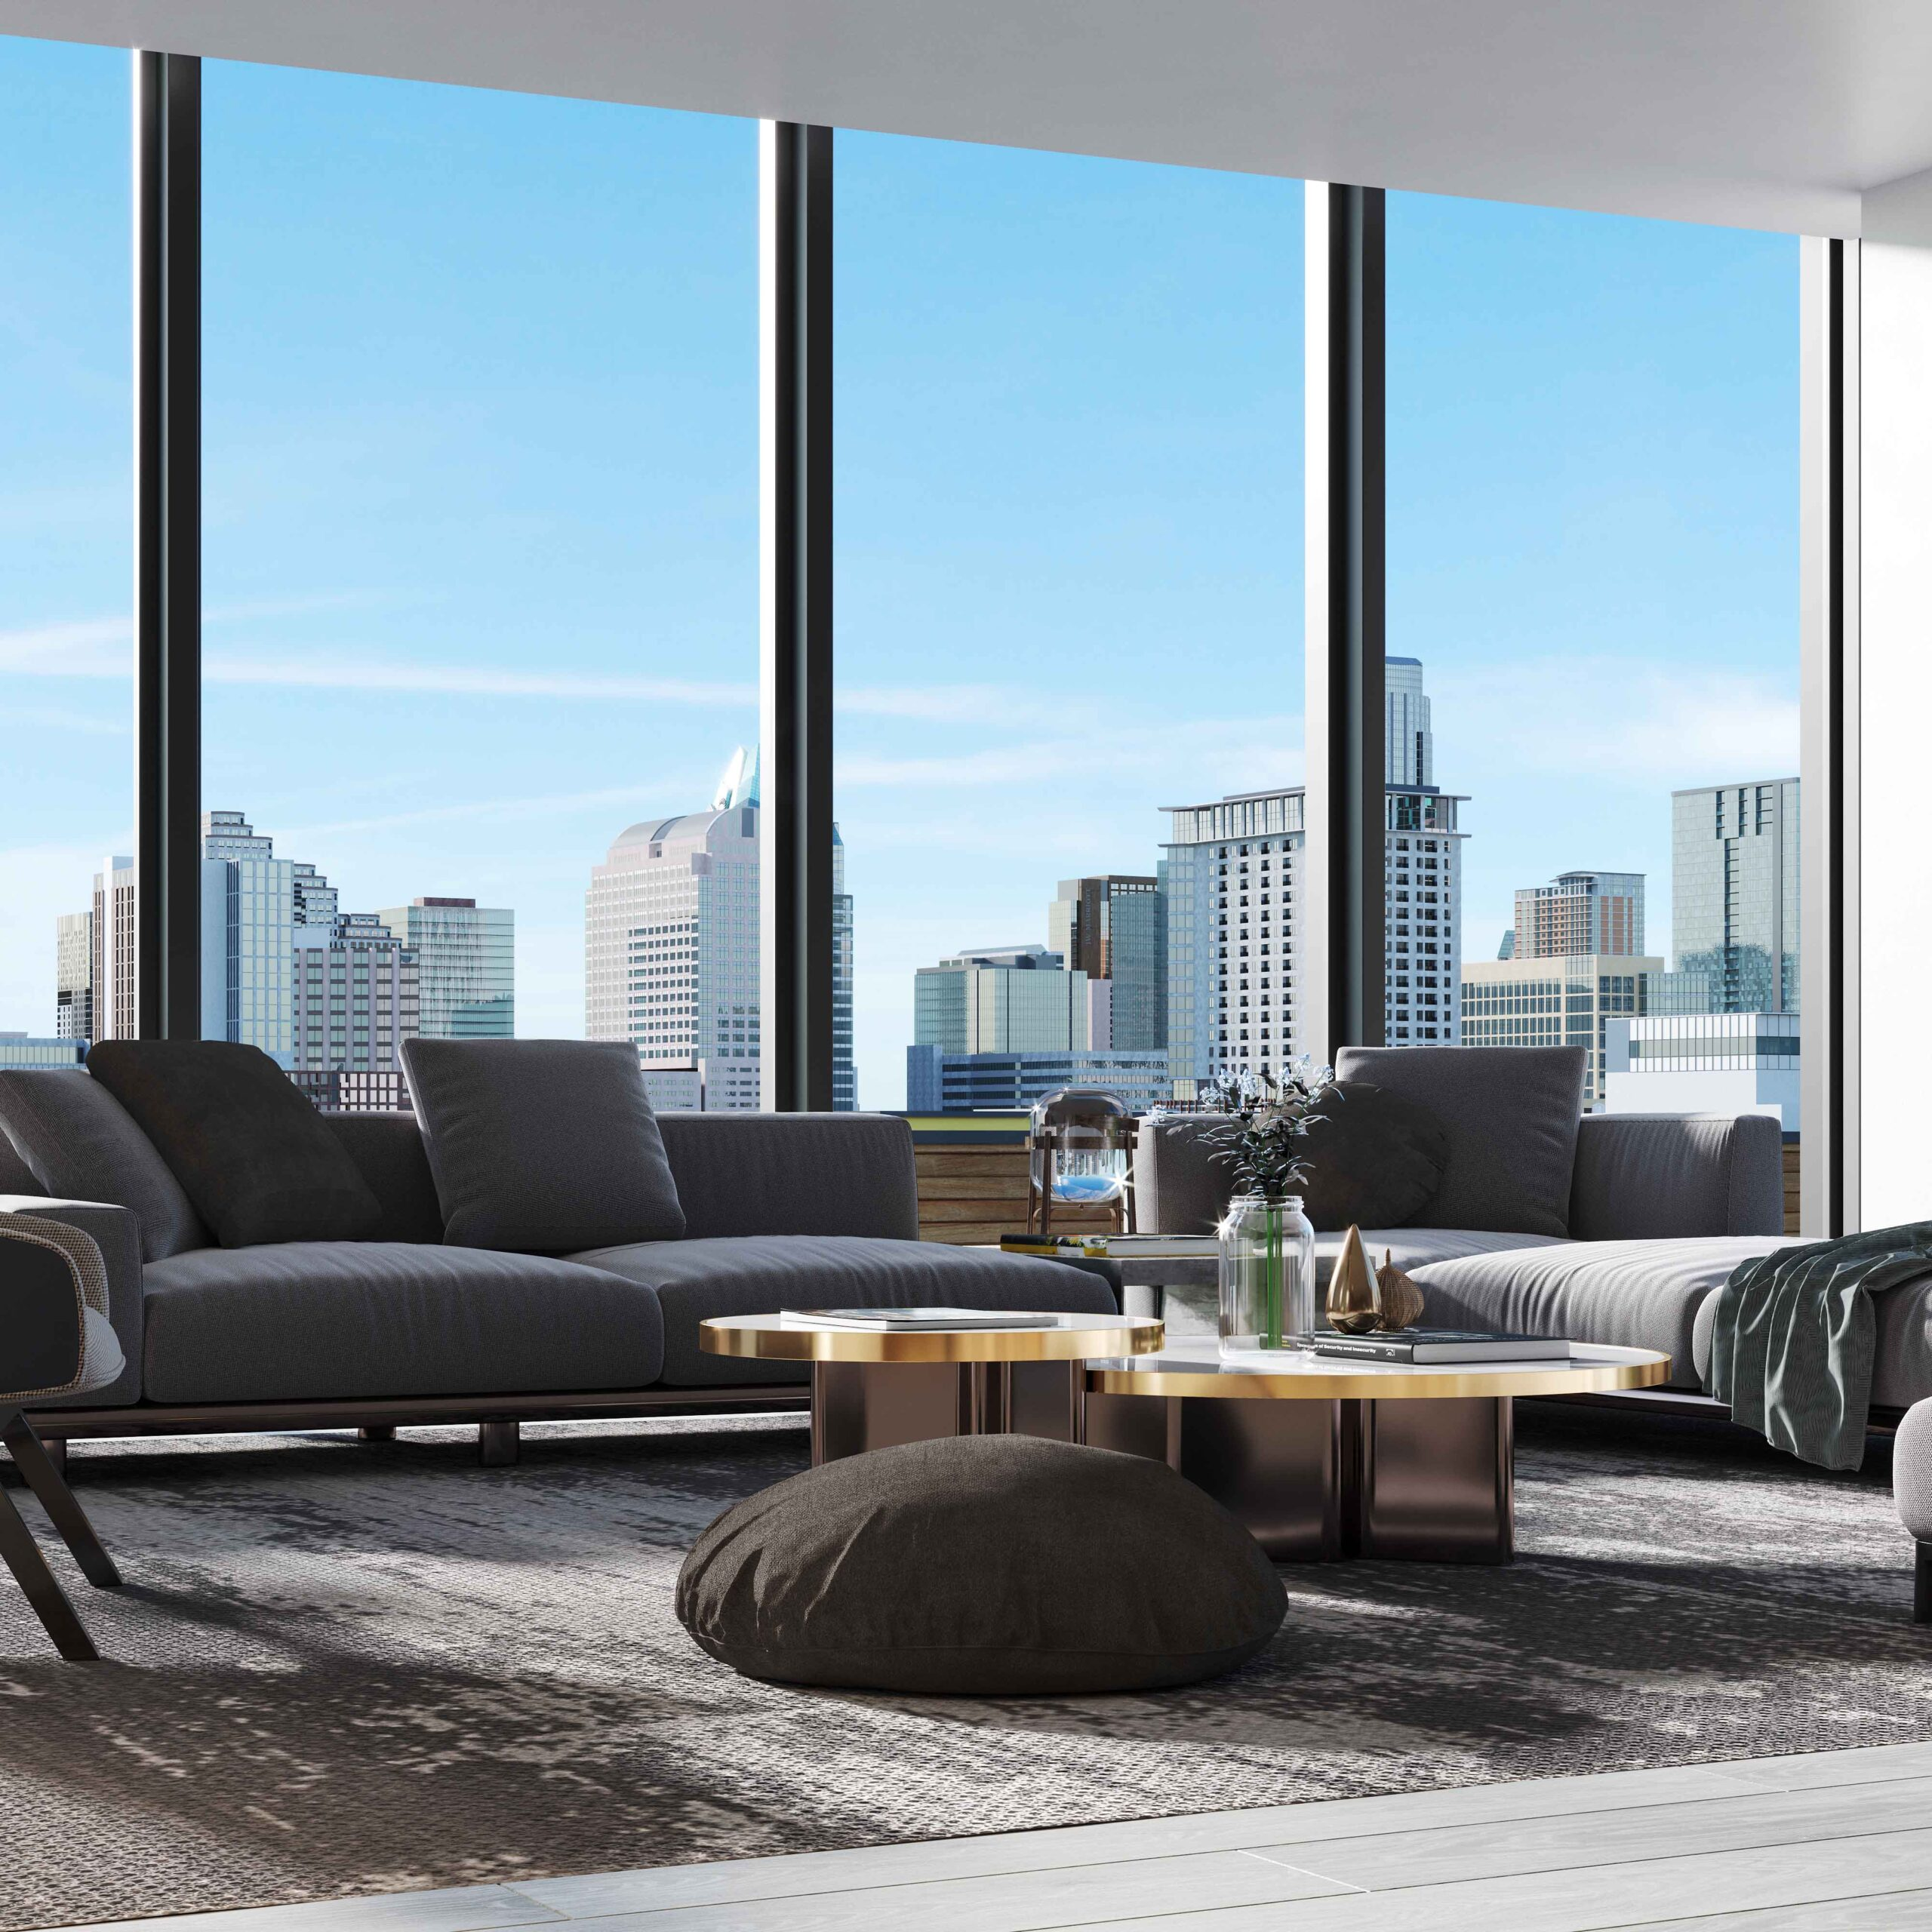 Living Room Rendering created by Radical Galaxy Studio in a condominium